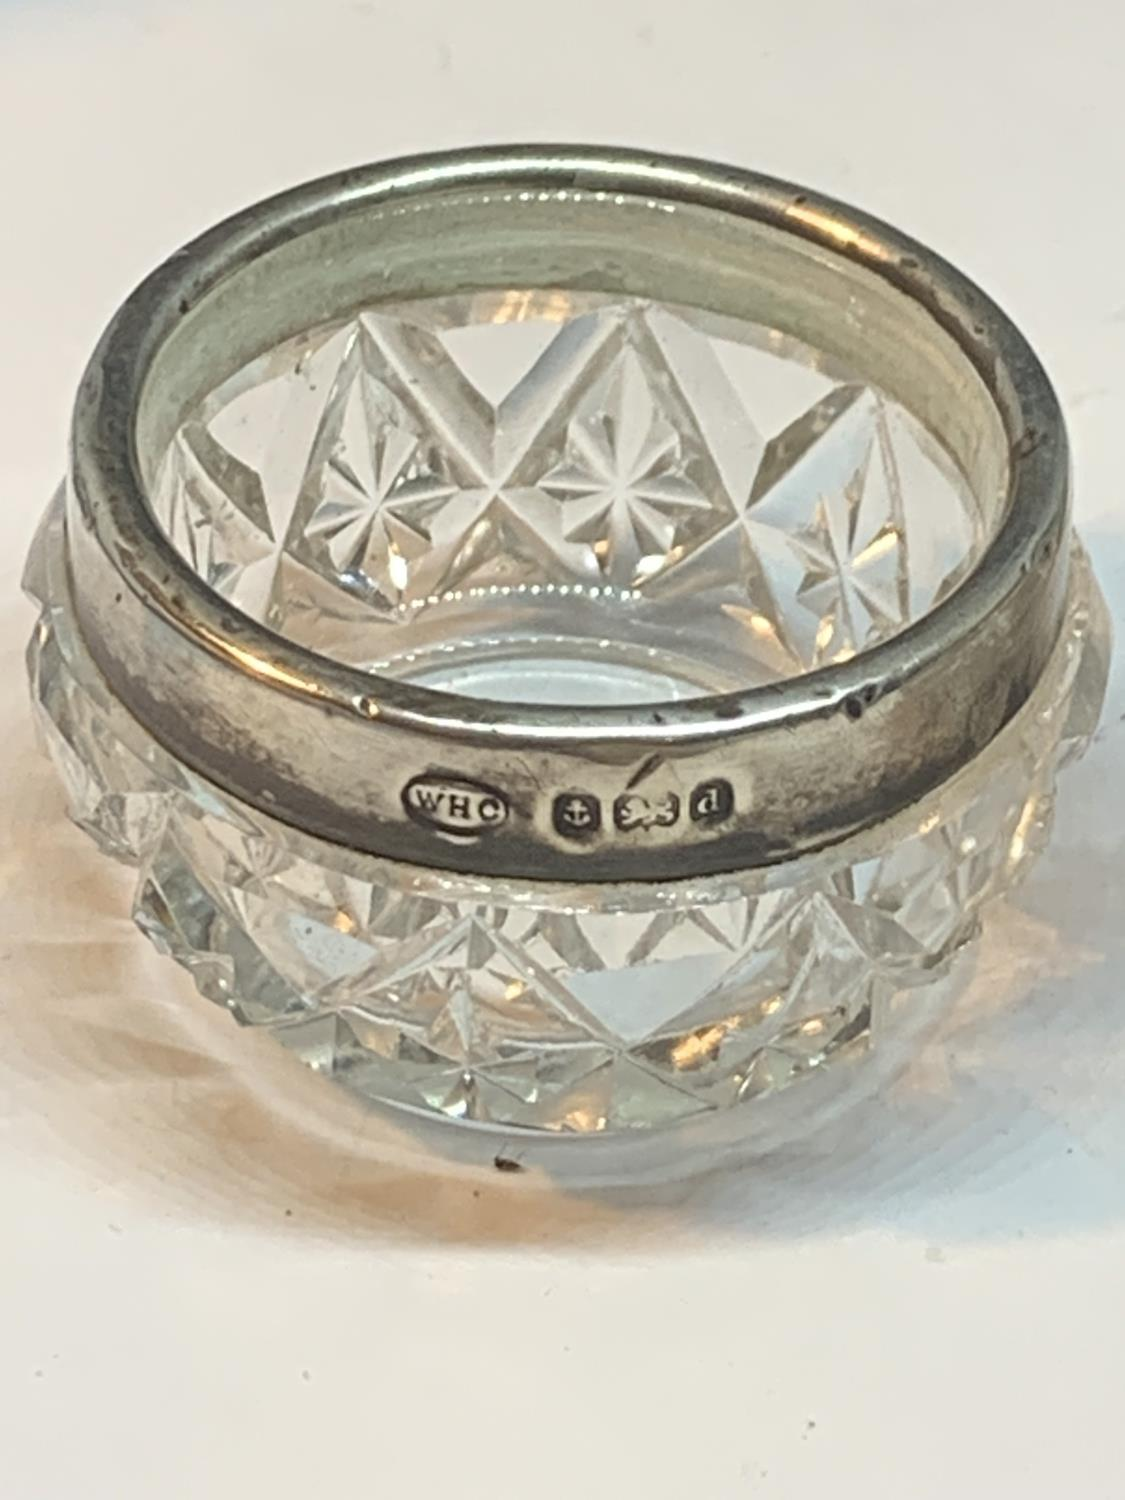 TWO GLASS POTS ONE WITH A HALLMARKED BIRMINGHAM SILVER RIM AND ONE WITH AN INDISTINCT HALLMARKED - Image 2 of 3